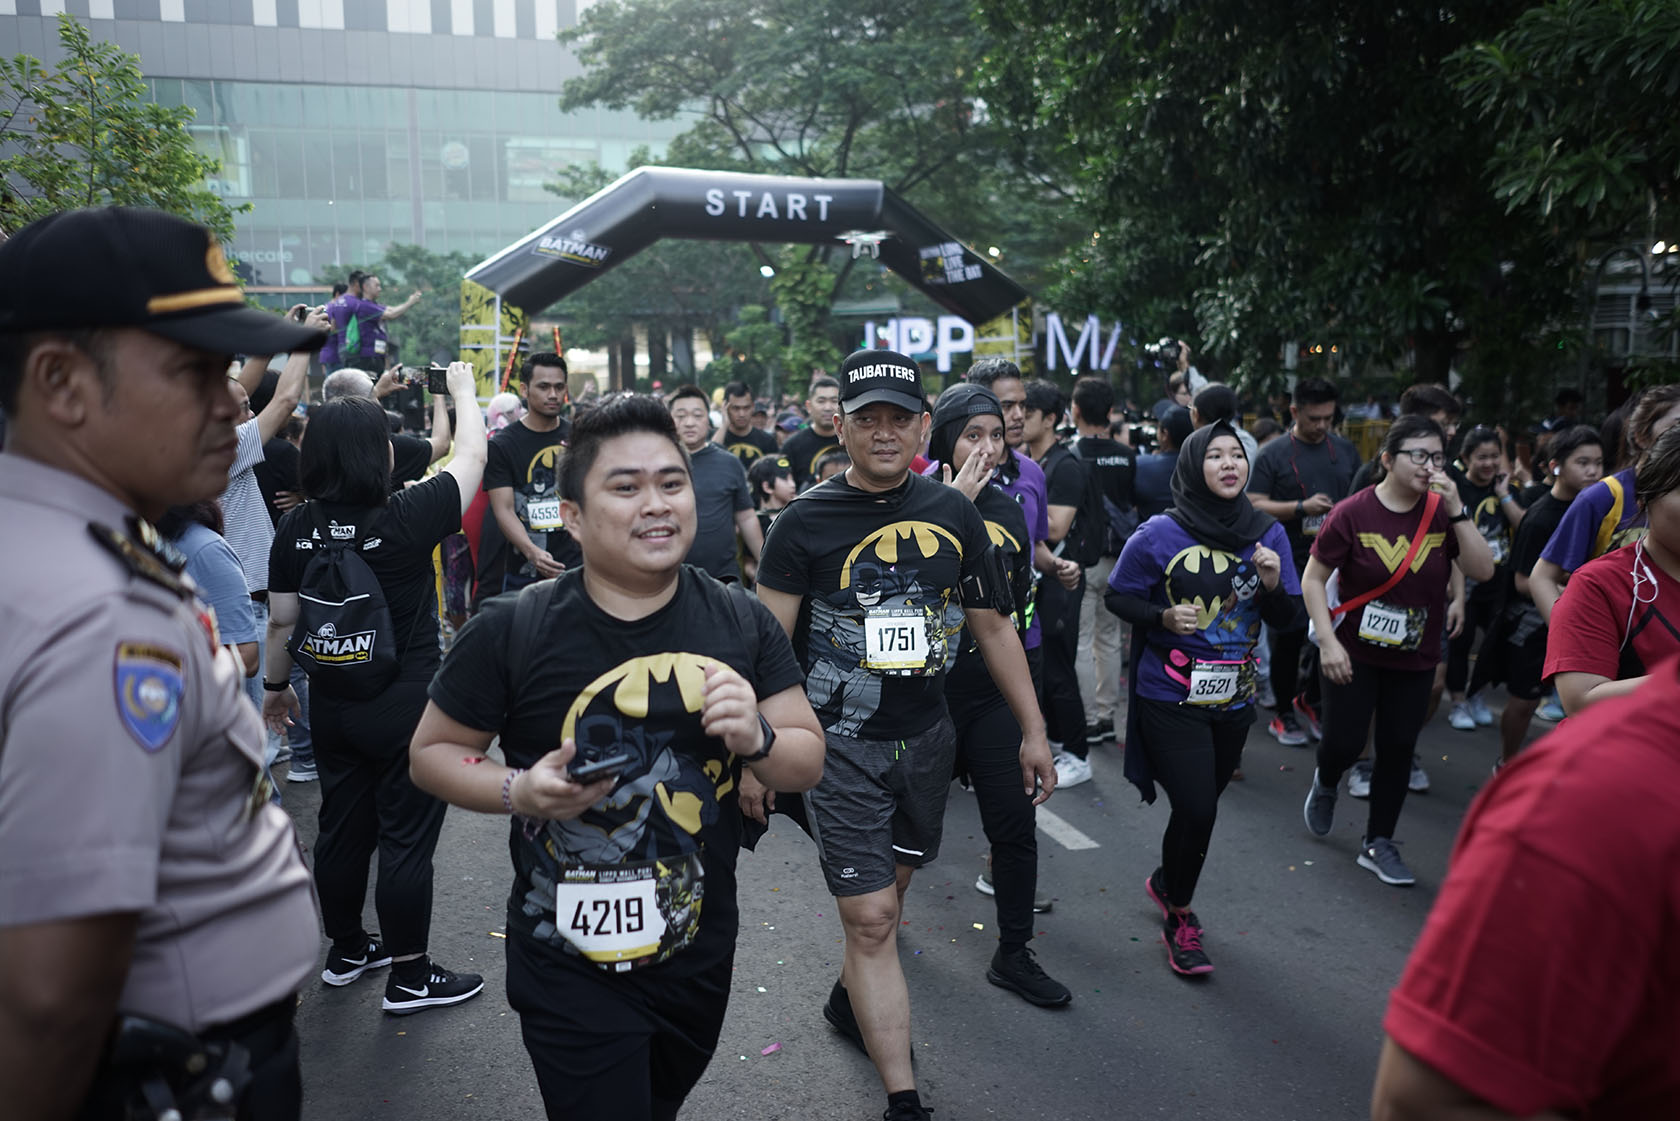 Batman Run